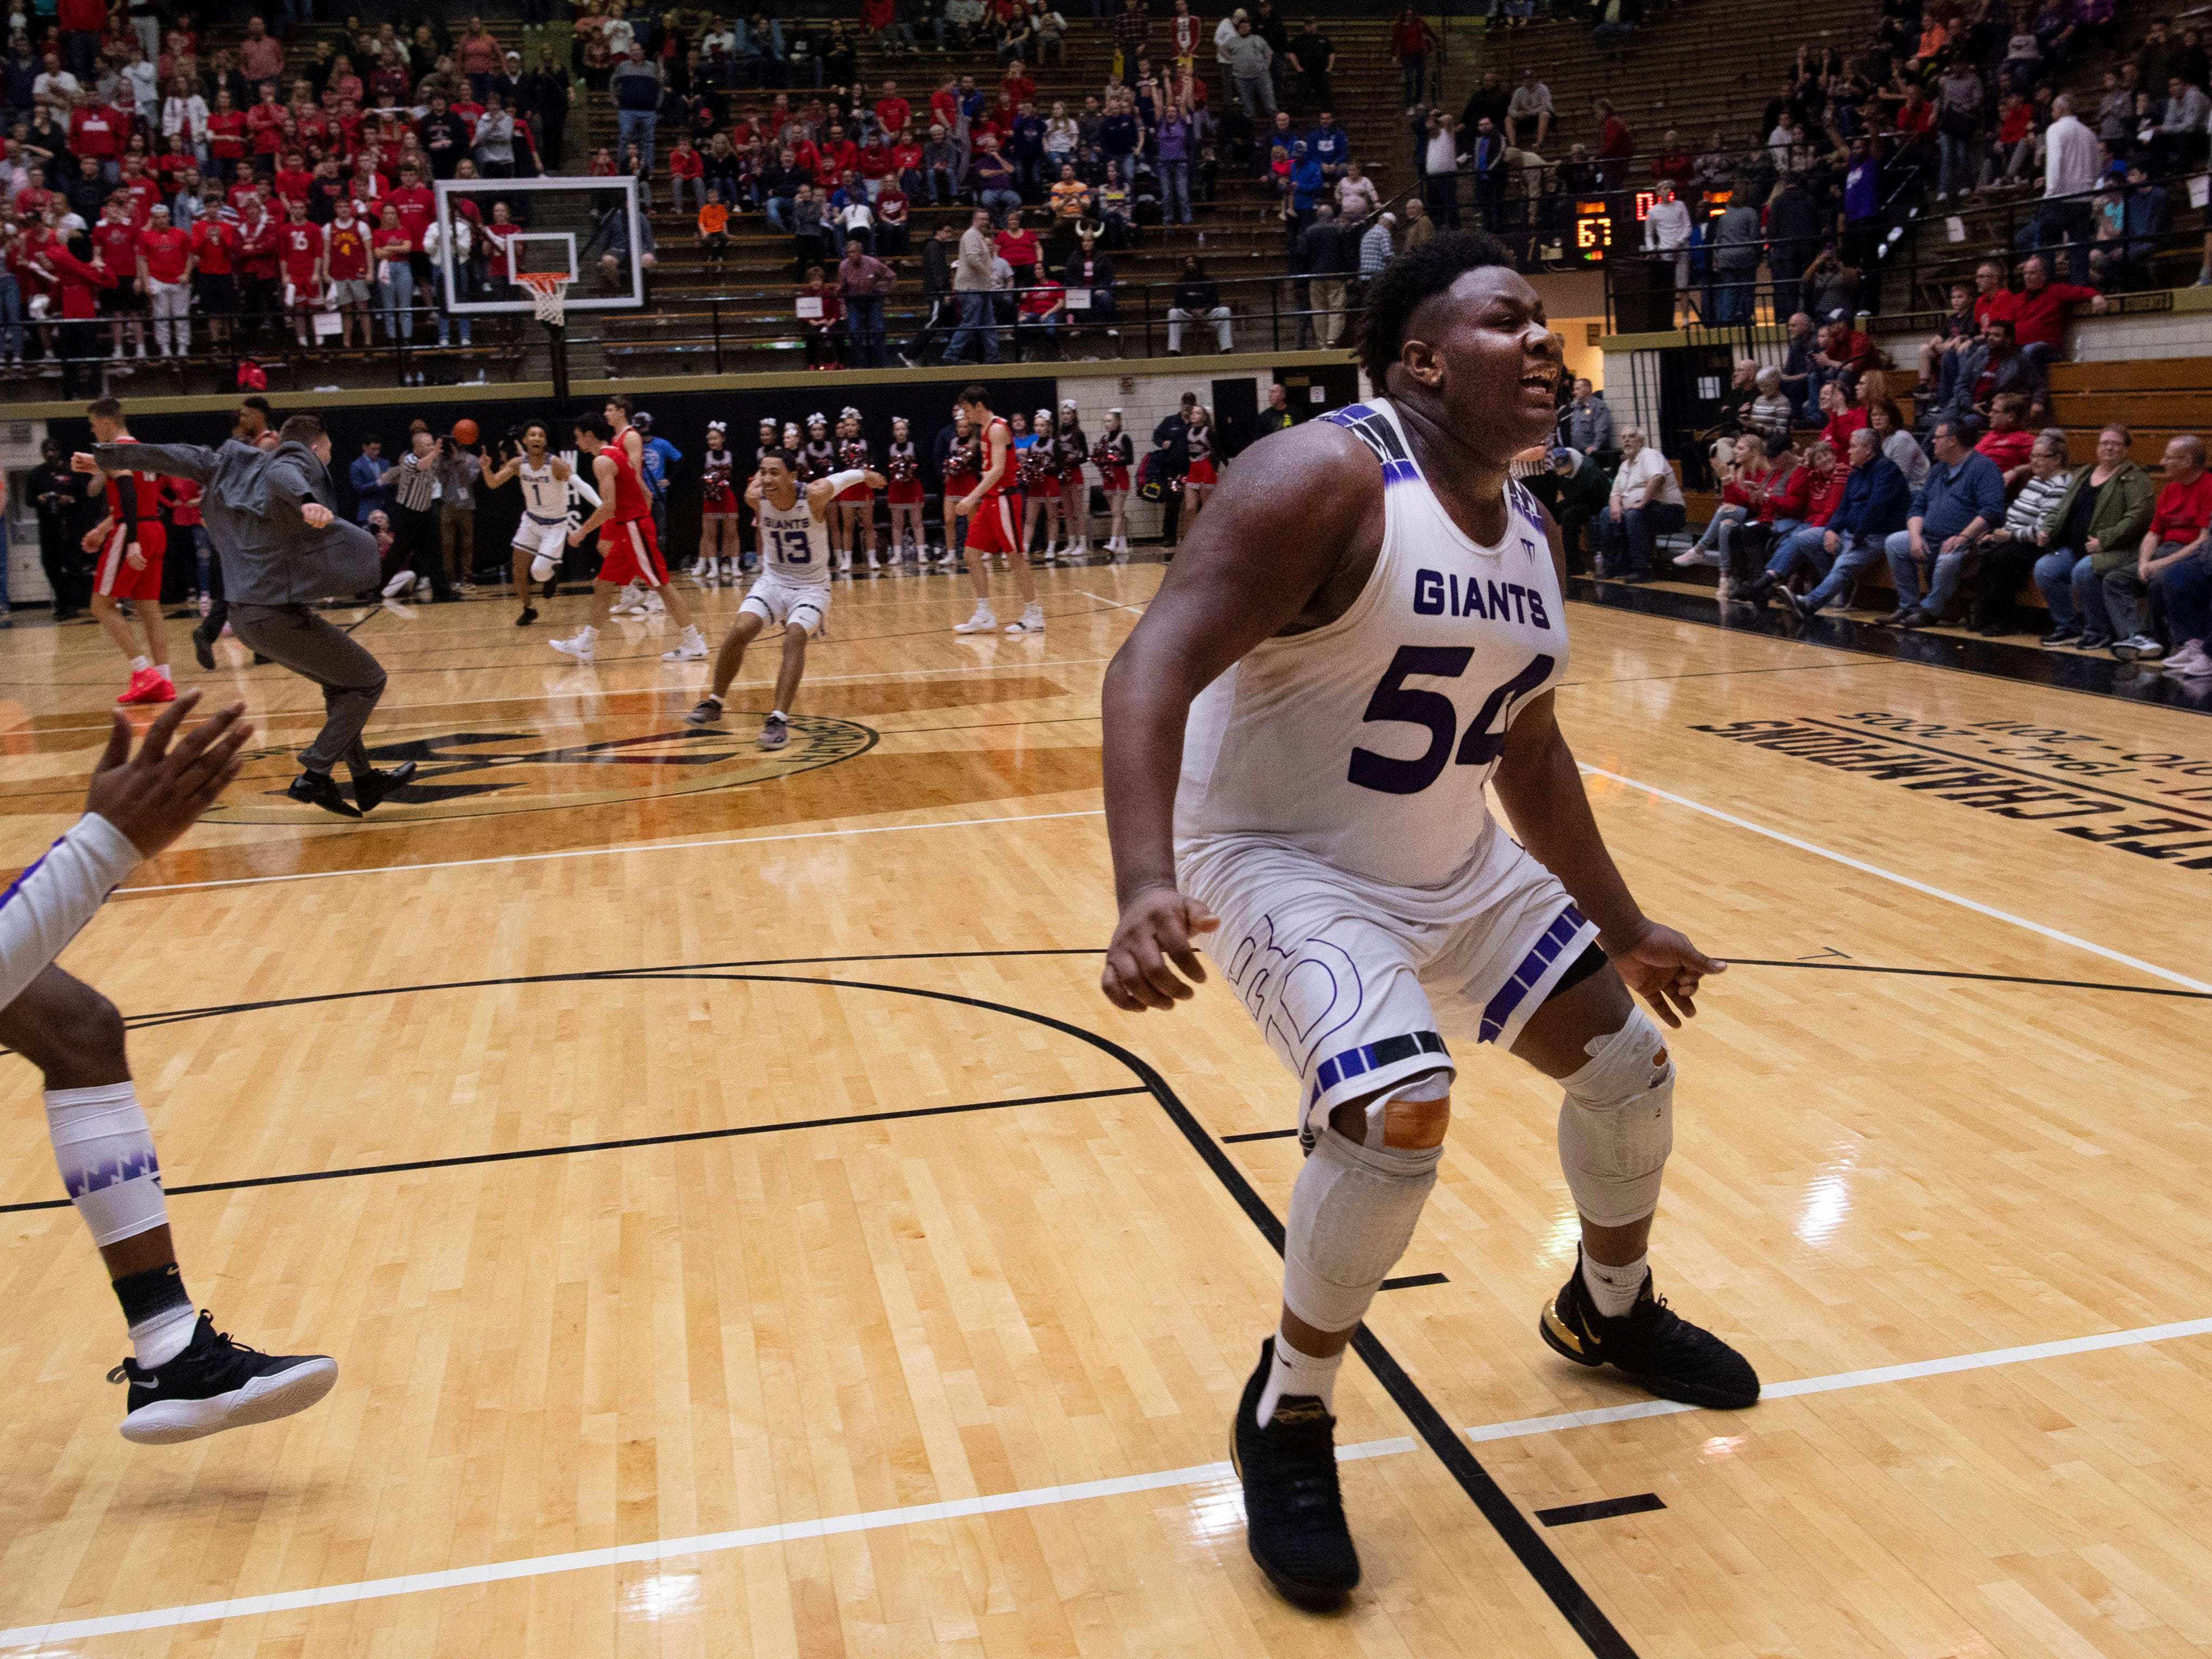 Ben Davis's Dawand Jones (54) celebrates moments after beating Center Grove and advancing to state at the 4A Boys Indiana Semi-State Basketball Tournament at the Hatchet House in Washington, Ind., Saturday afternoon.